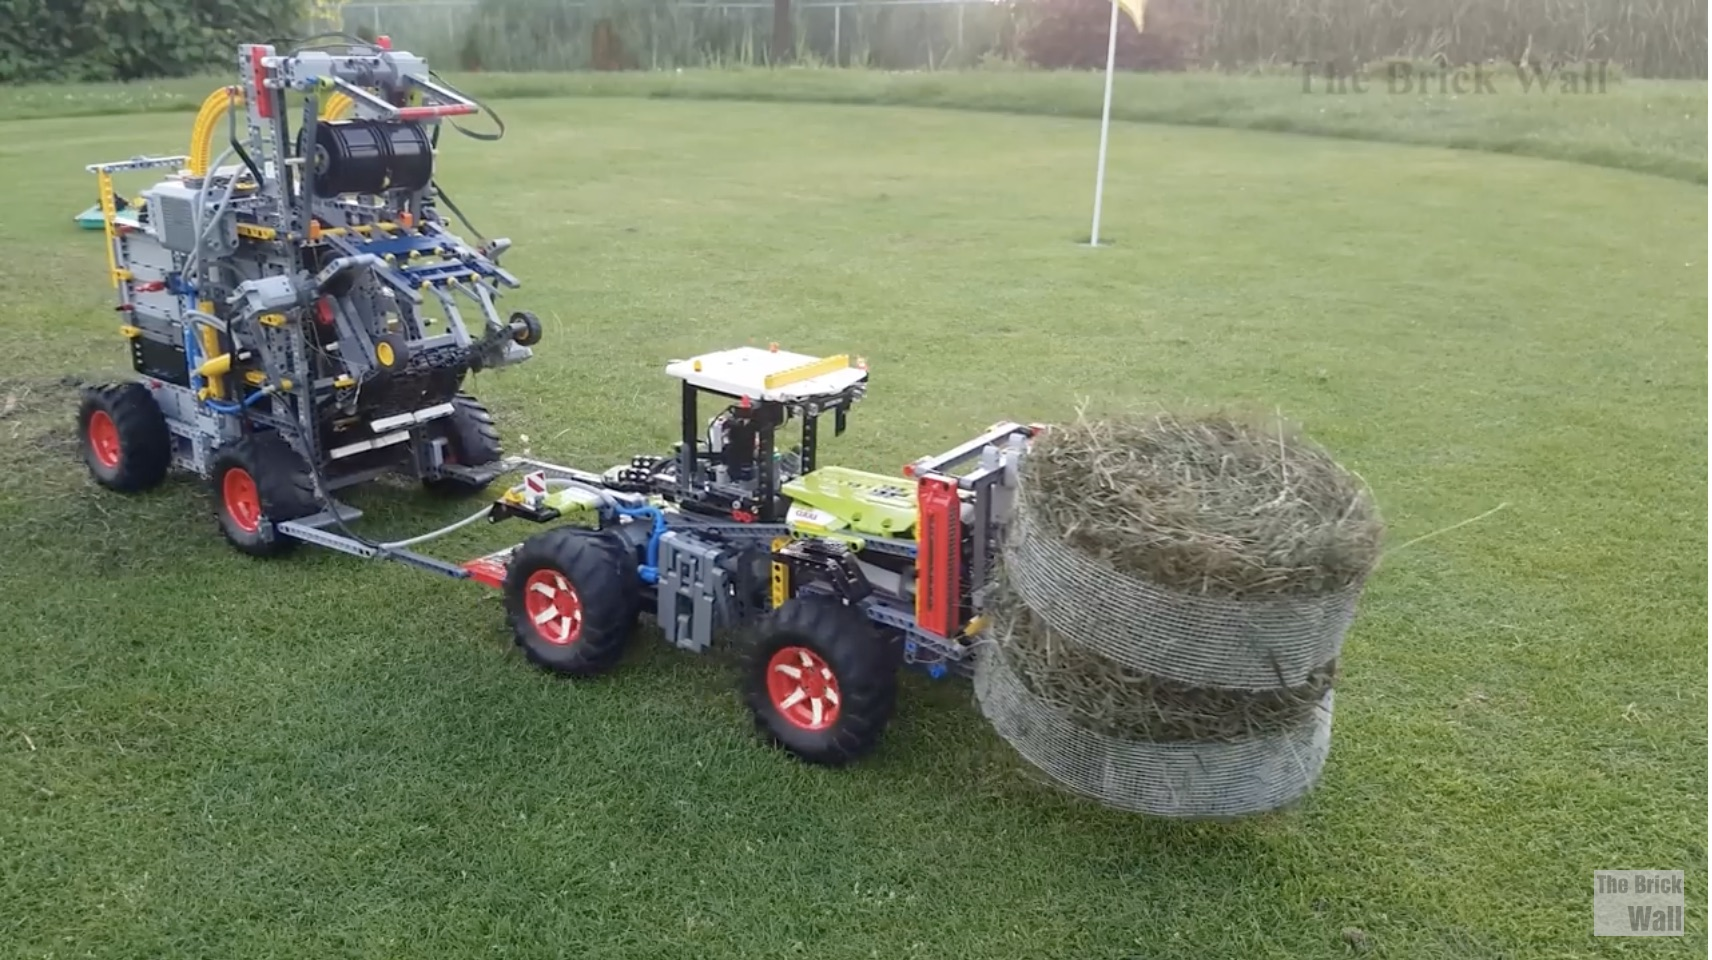 Ready For Spring Lawn Care? How About This Lego Technic-Based Hay Baler System?